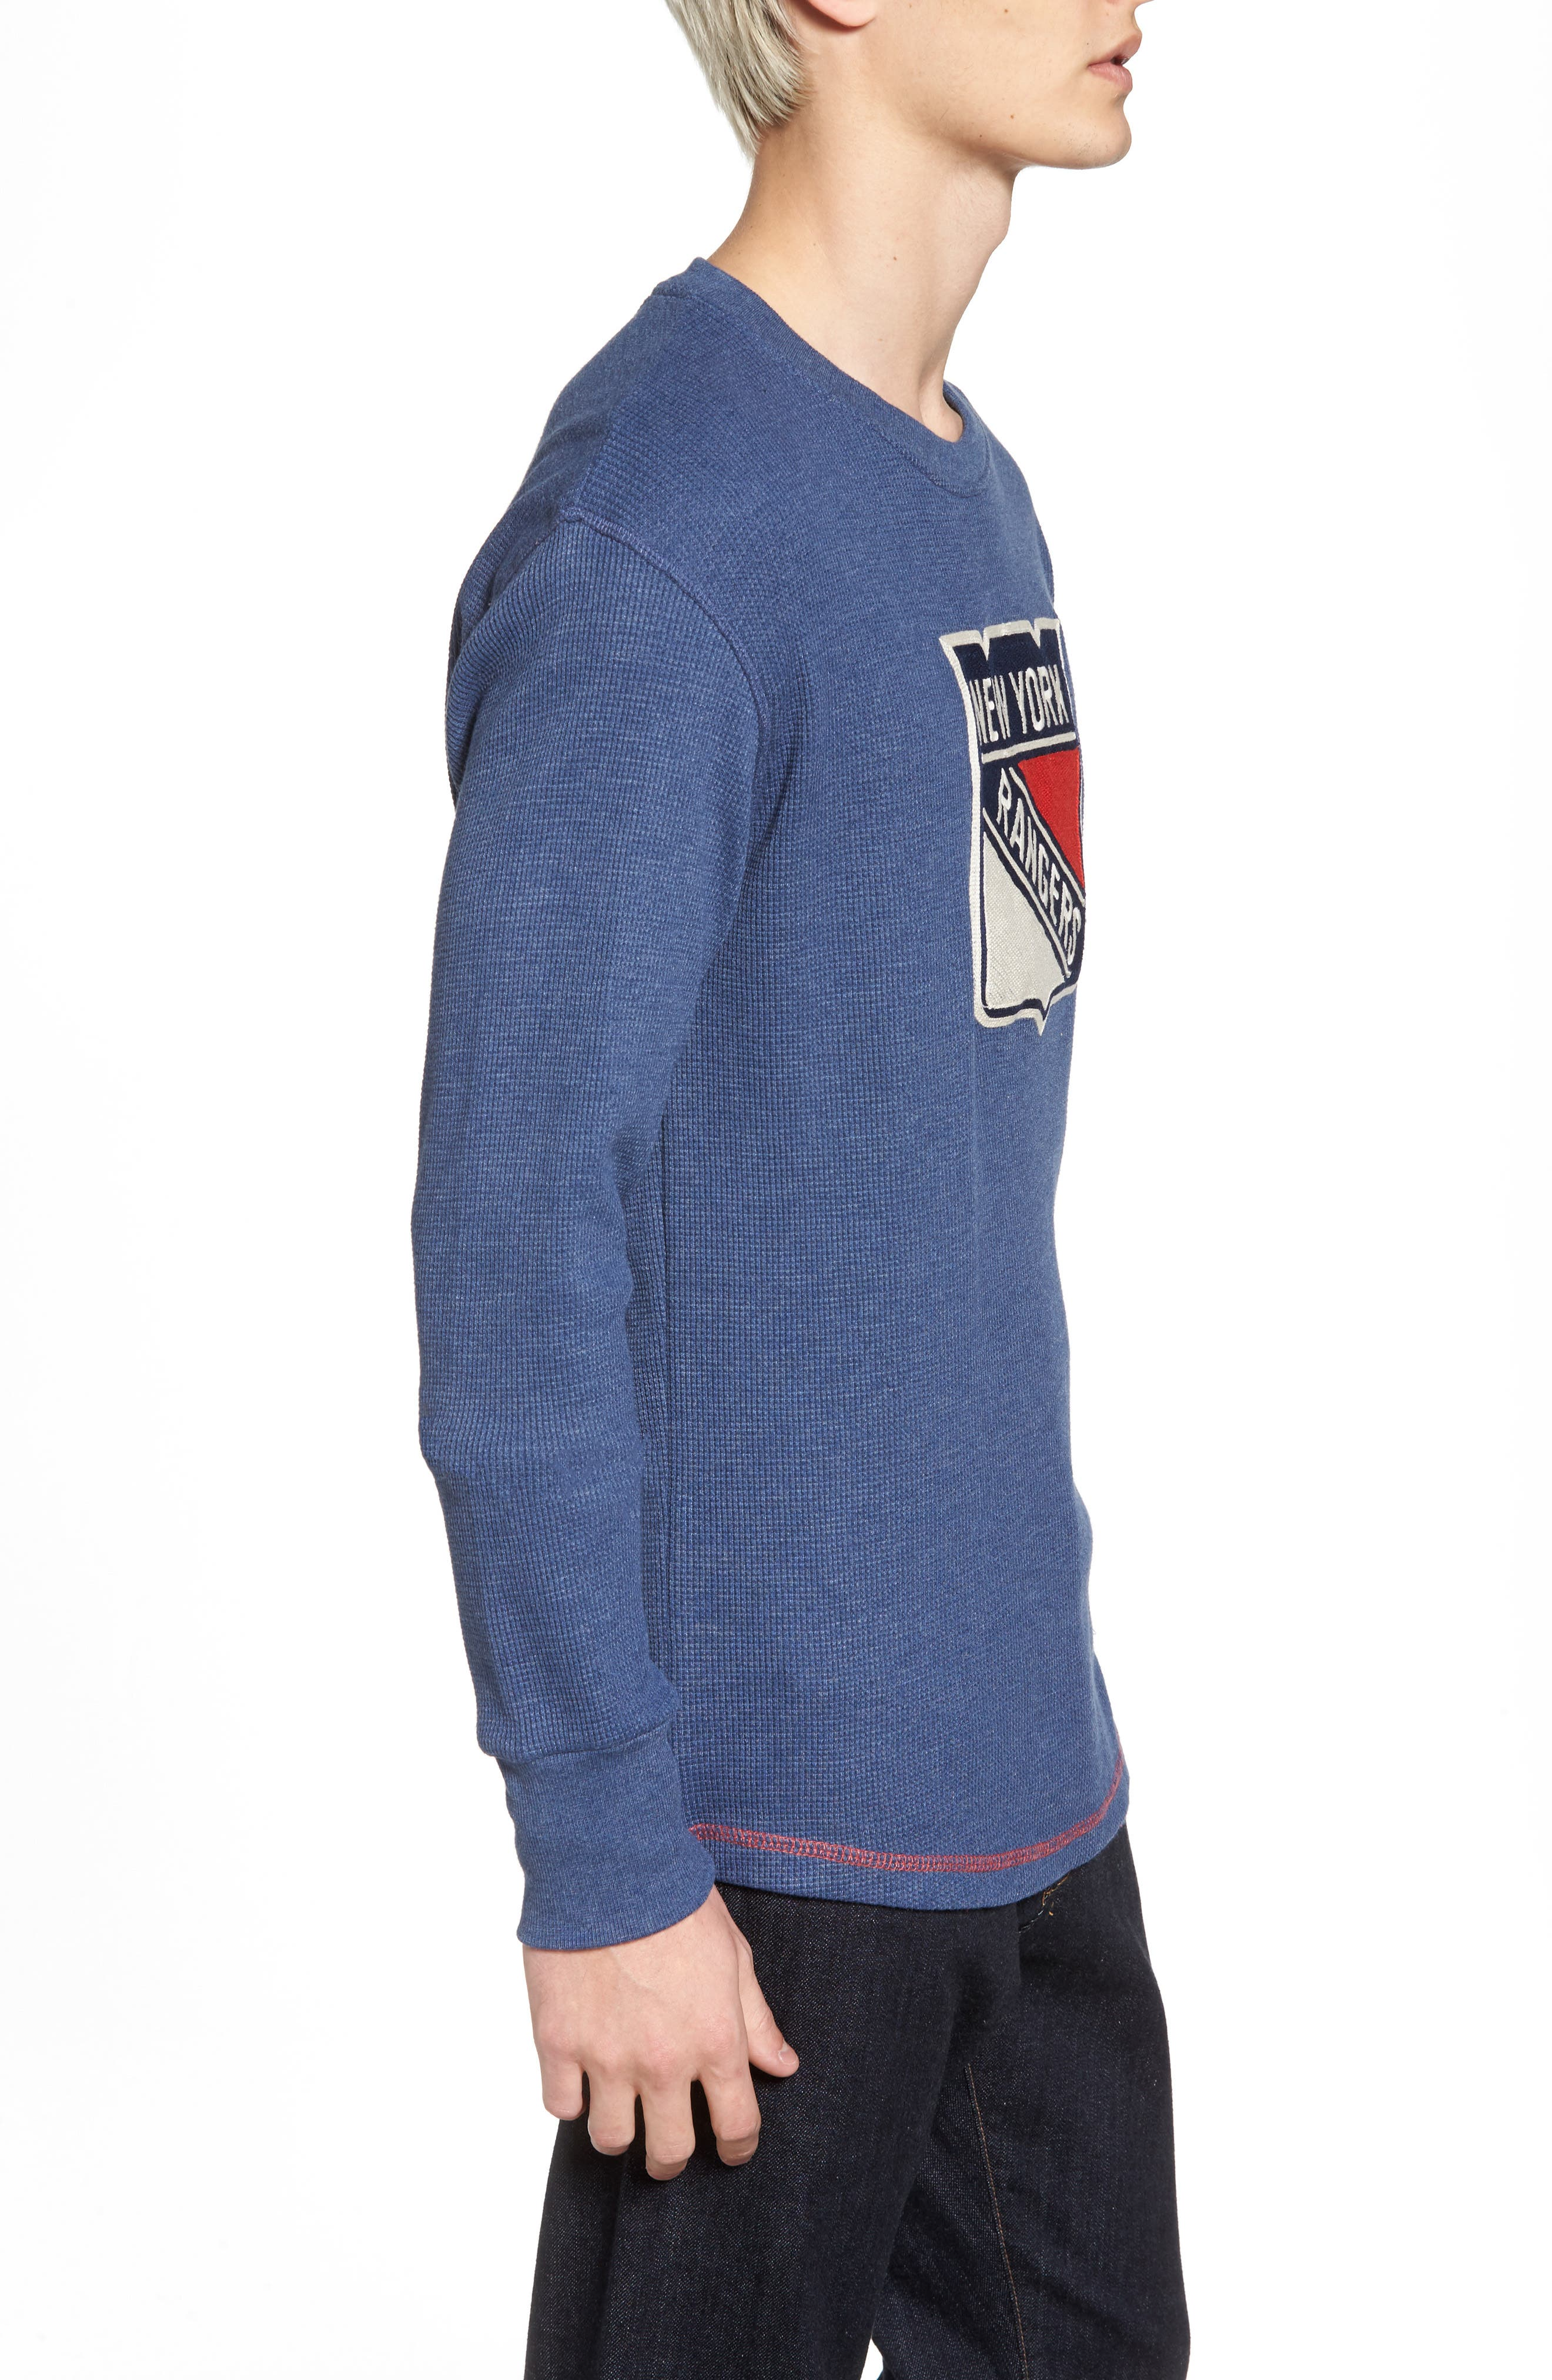 New York Rangers Embroidered Long Sleeve Thermal Shirt,                             Alternate thumbnail 3, color,                             410